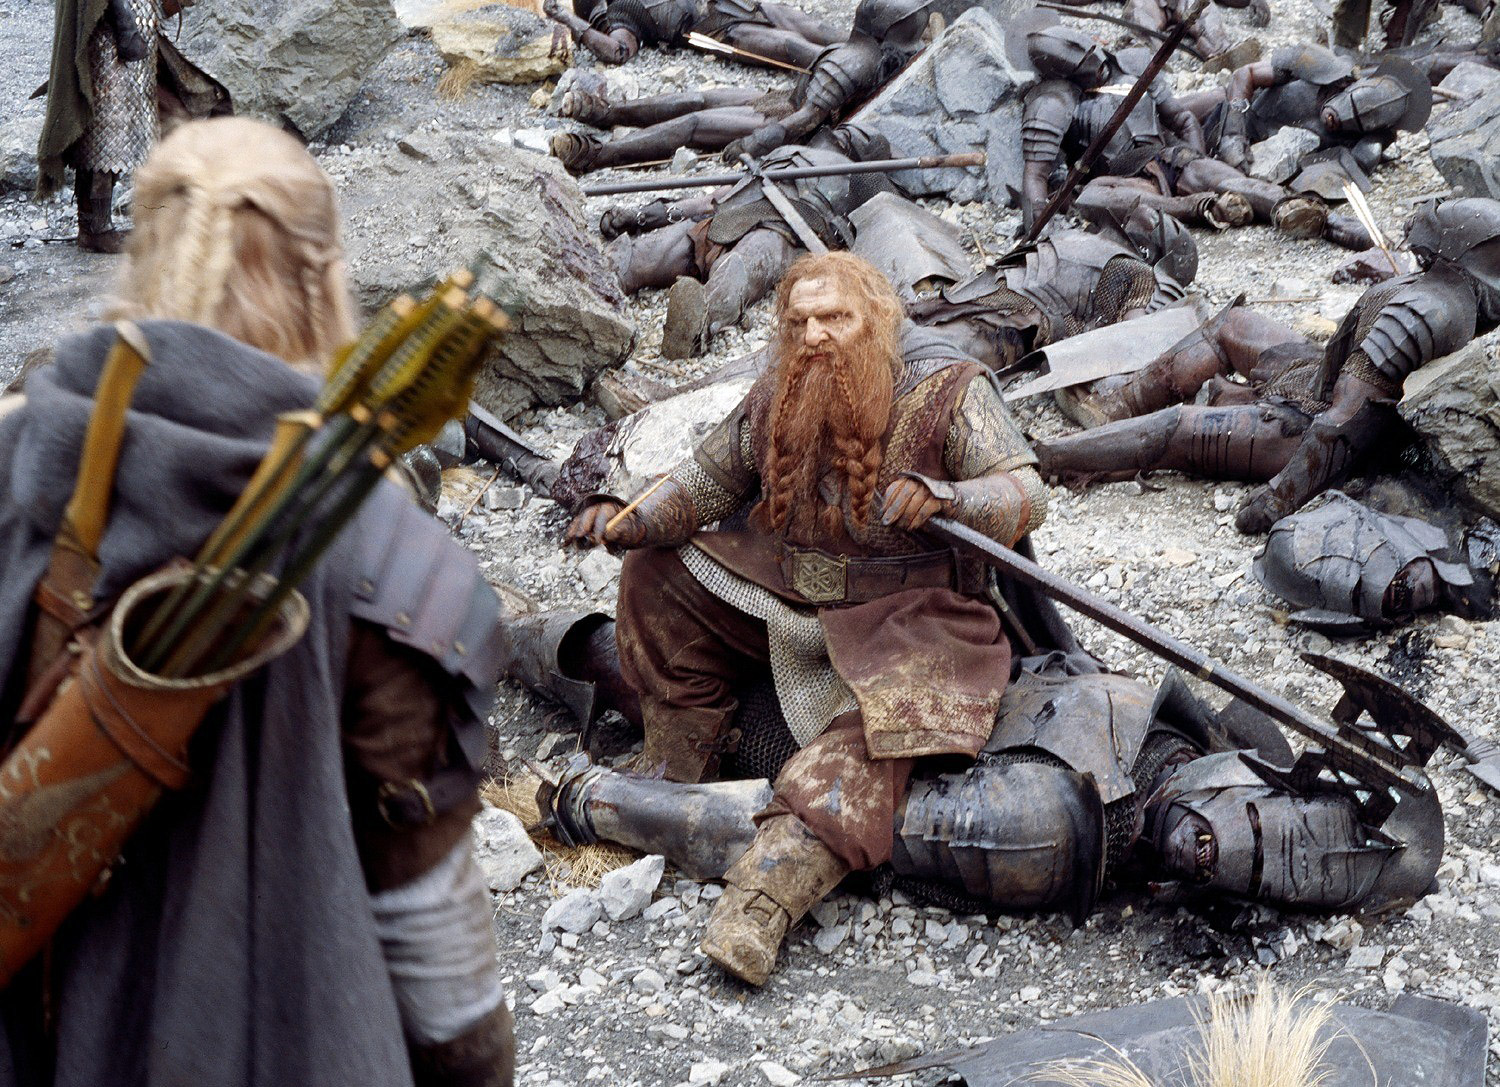 2003: The Lord of the Rings: The Two Towers